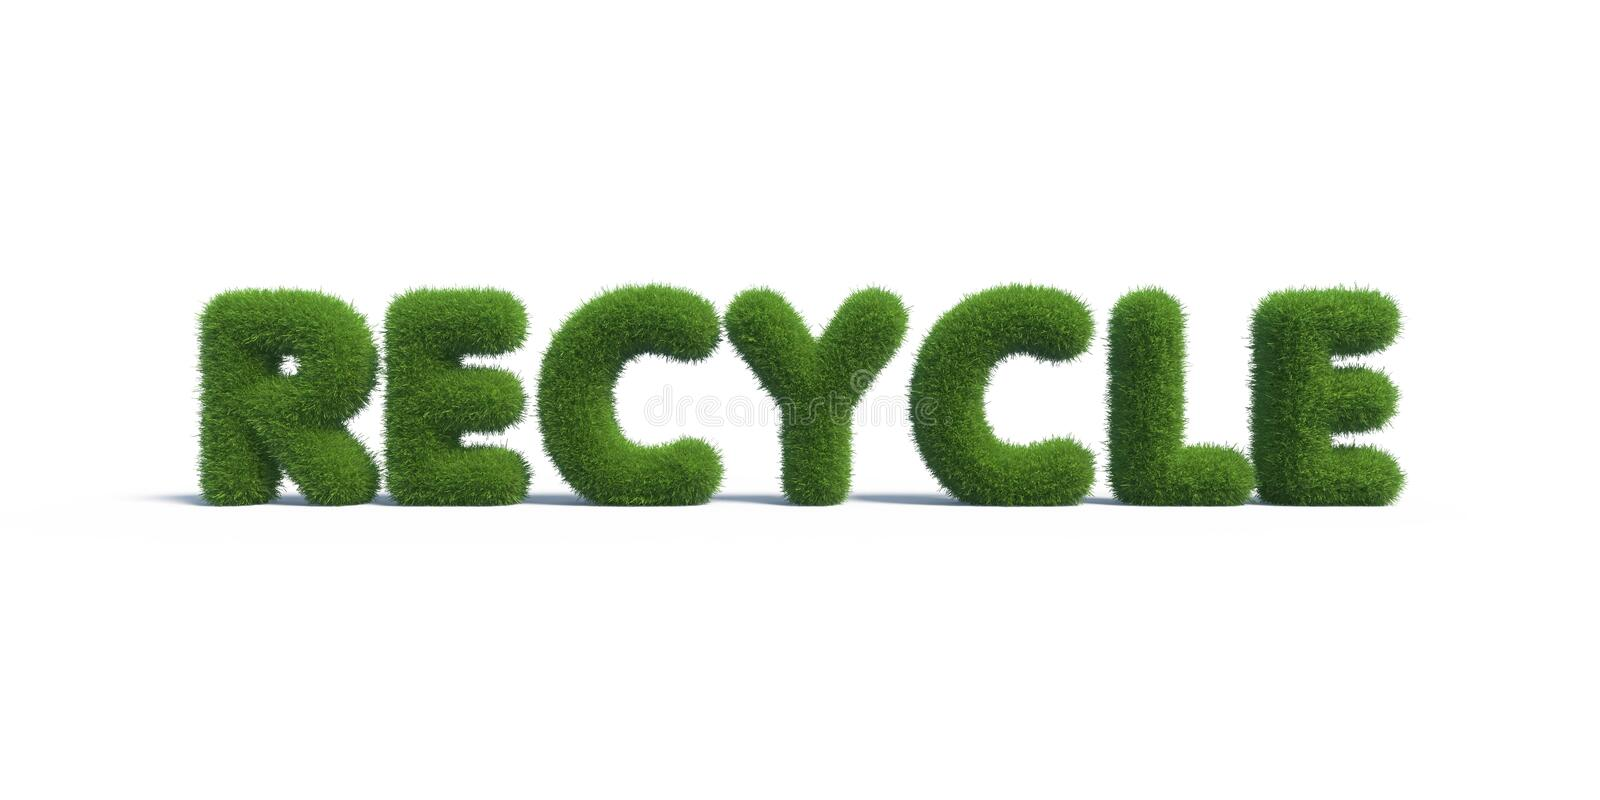 Recycle Symbol Grass On Background Stock Illustration Illustration